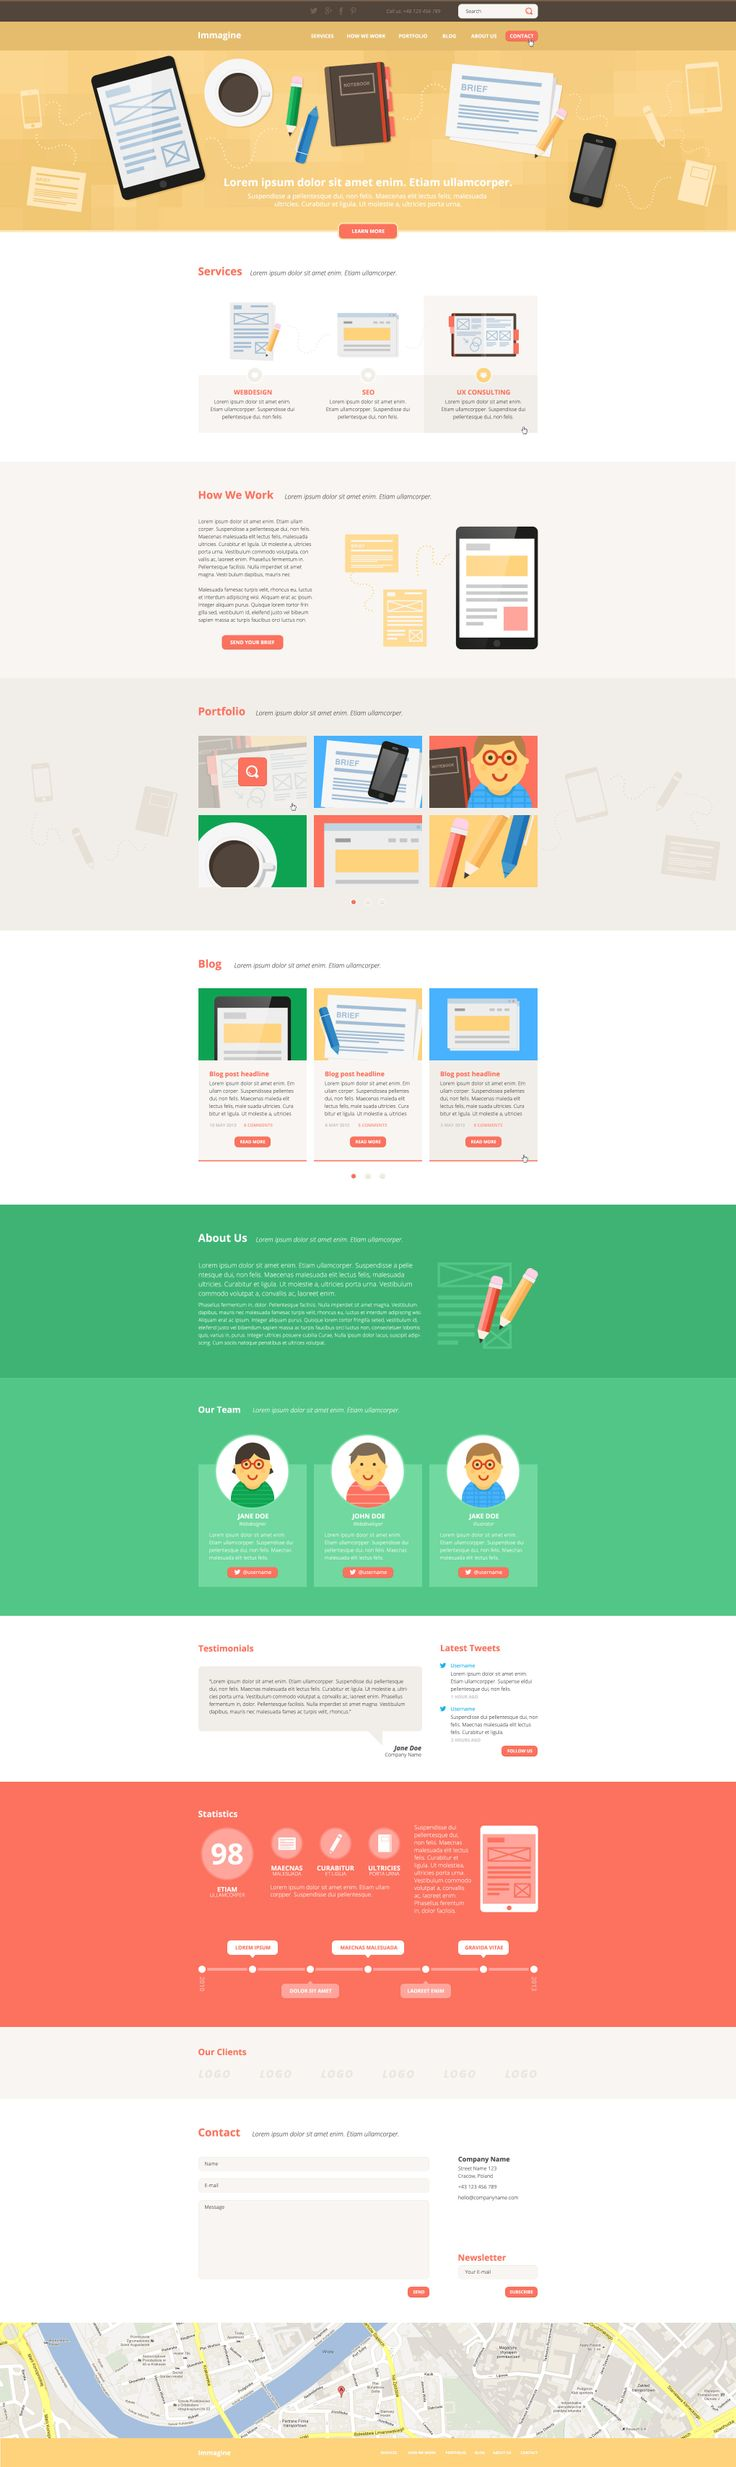 Flat webdesign. Illustration. Immagine - Illustrated One Page PSD Template.